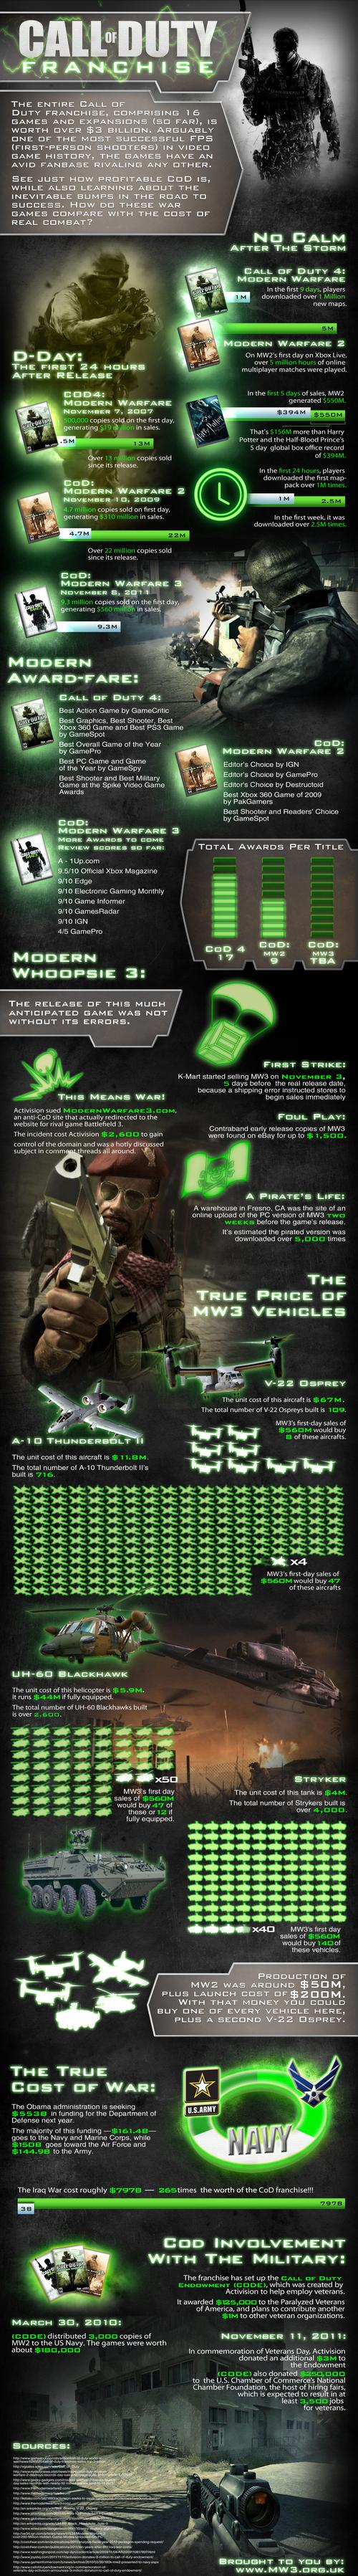 call of duty modern warfare infographic